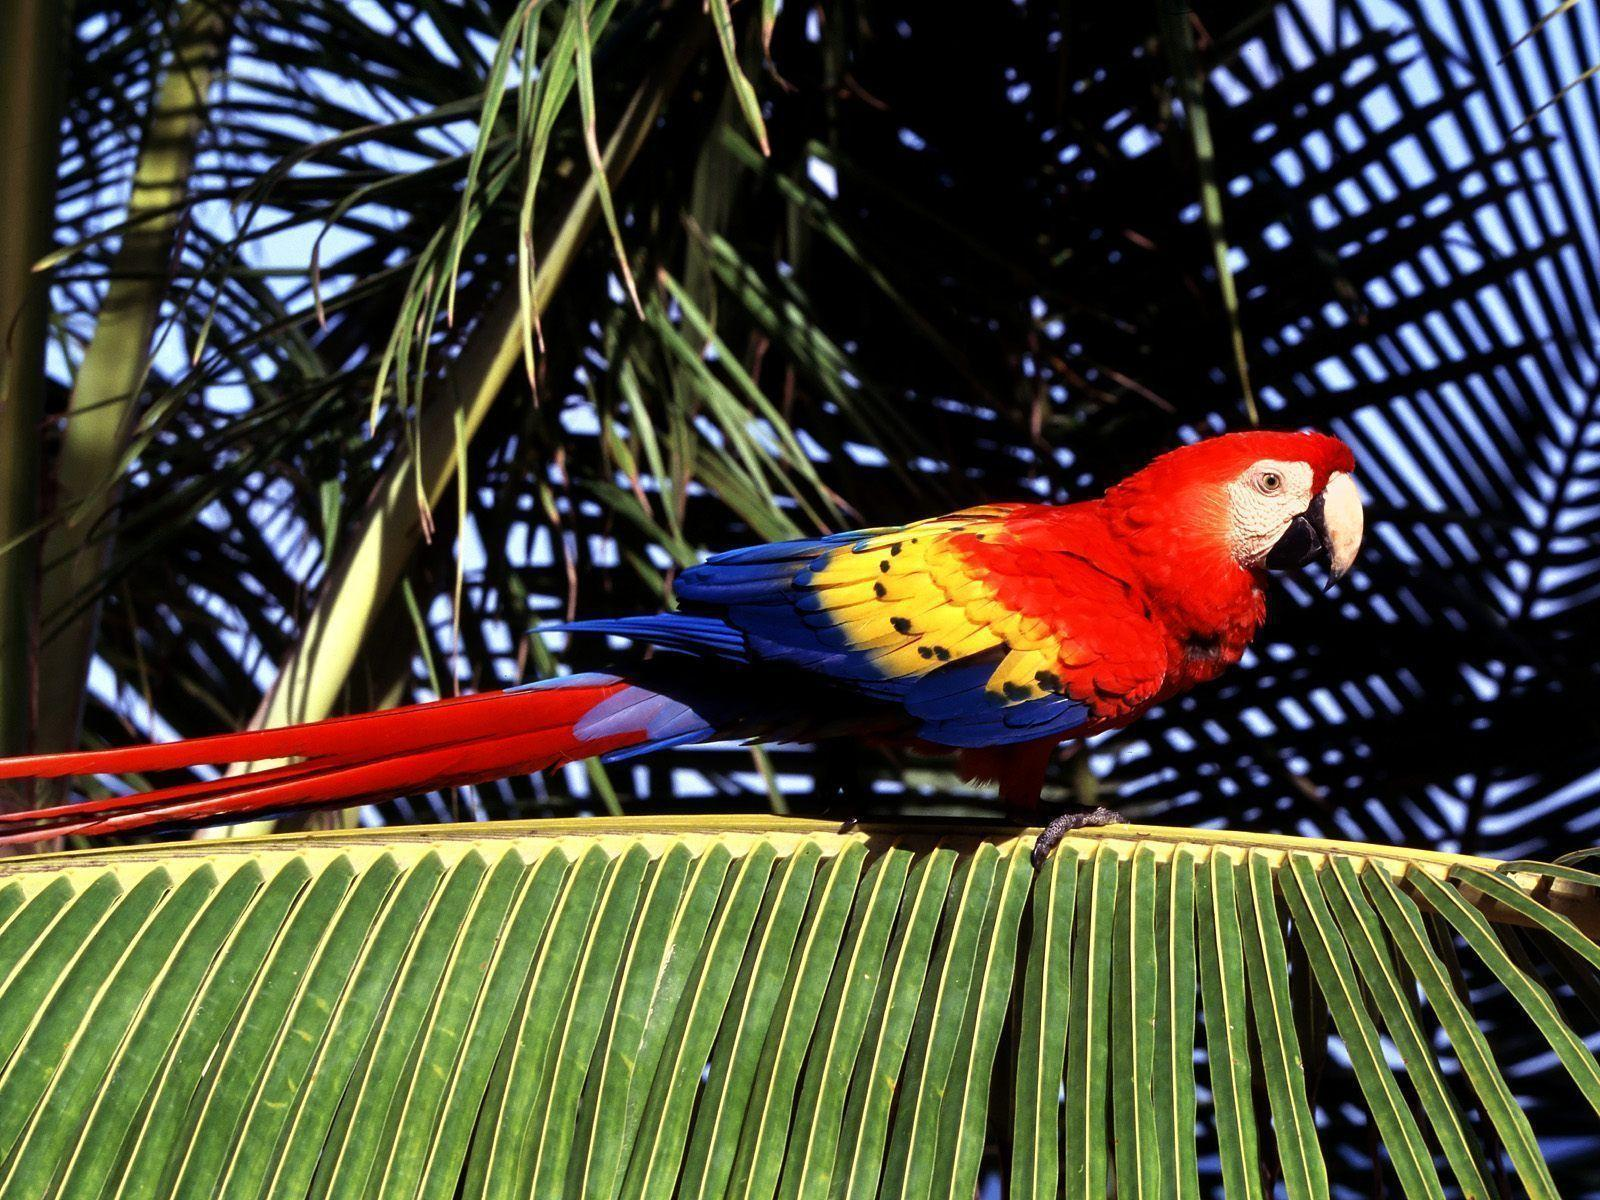 Scarlet Macaw Parrots Wallpaper | Scarlet Macaw Pictures | New ...